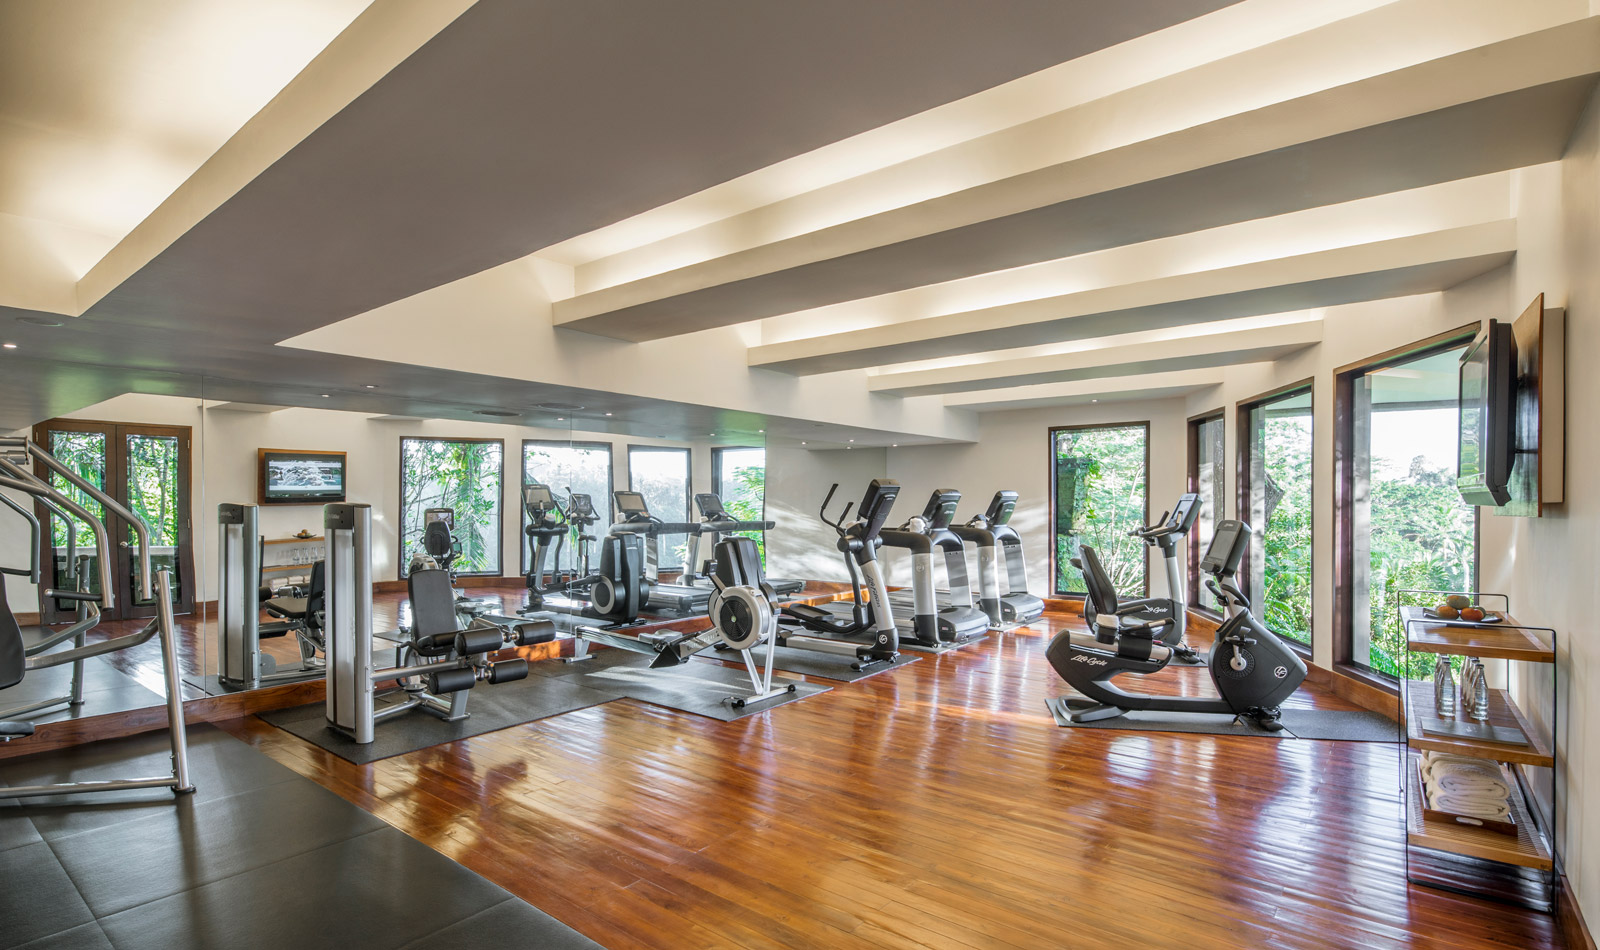 Bali Villas with Gyms - Ultimate Bali Luxury Villas